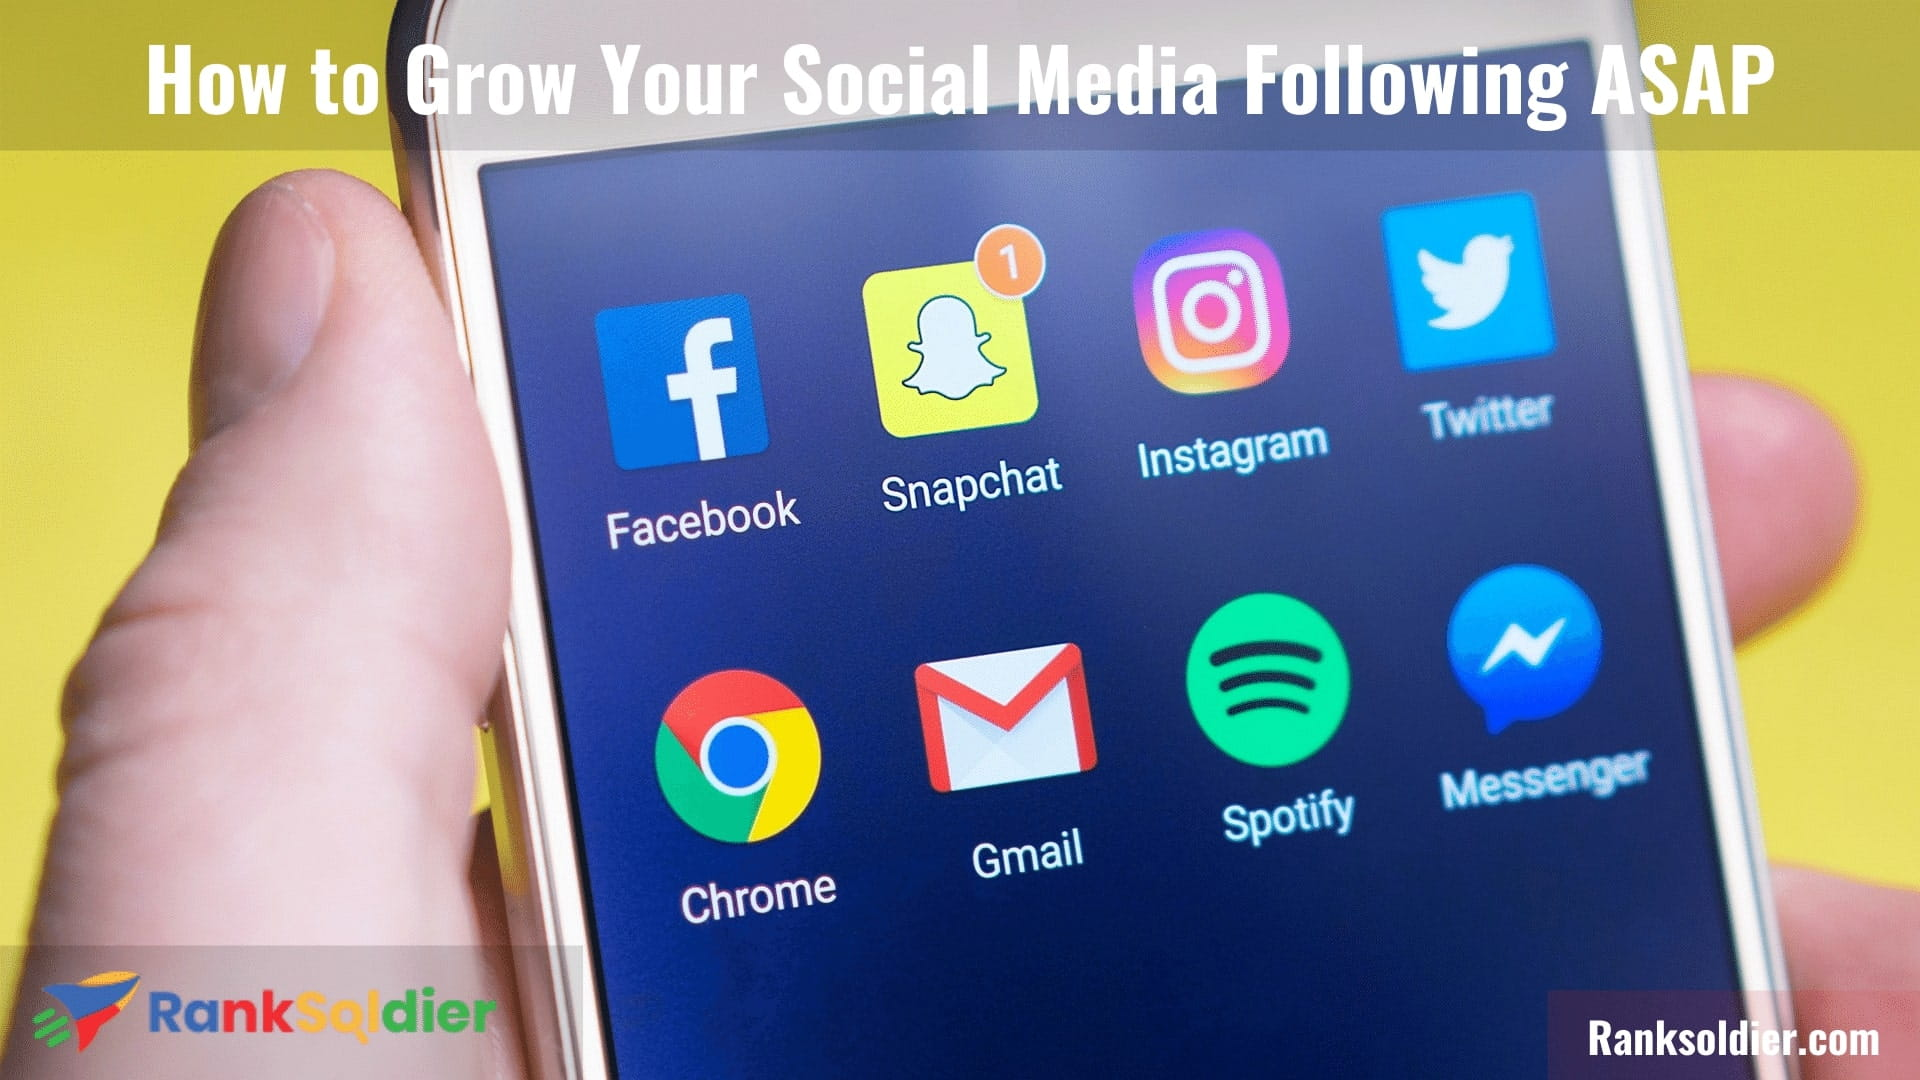 How to Grow Your Social Media Following ASAP